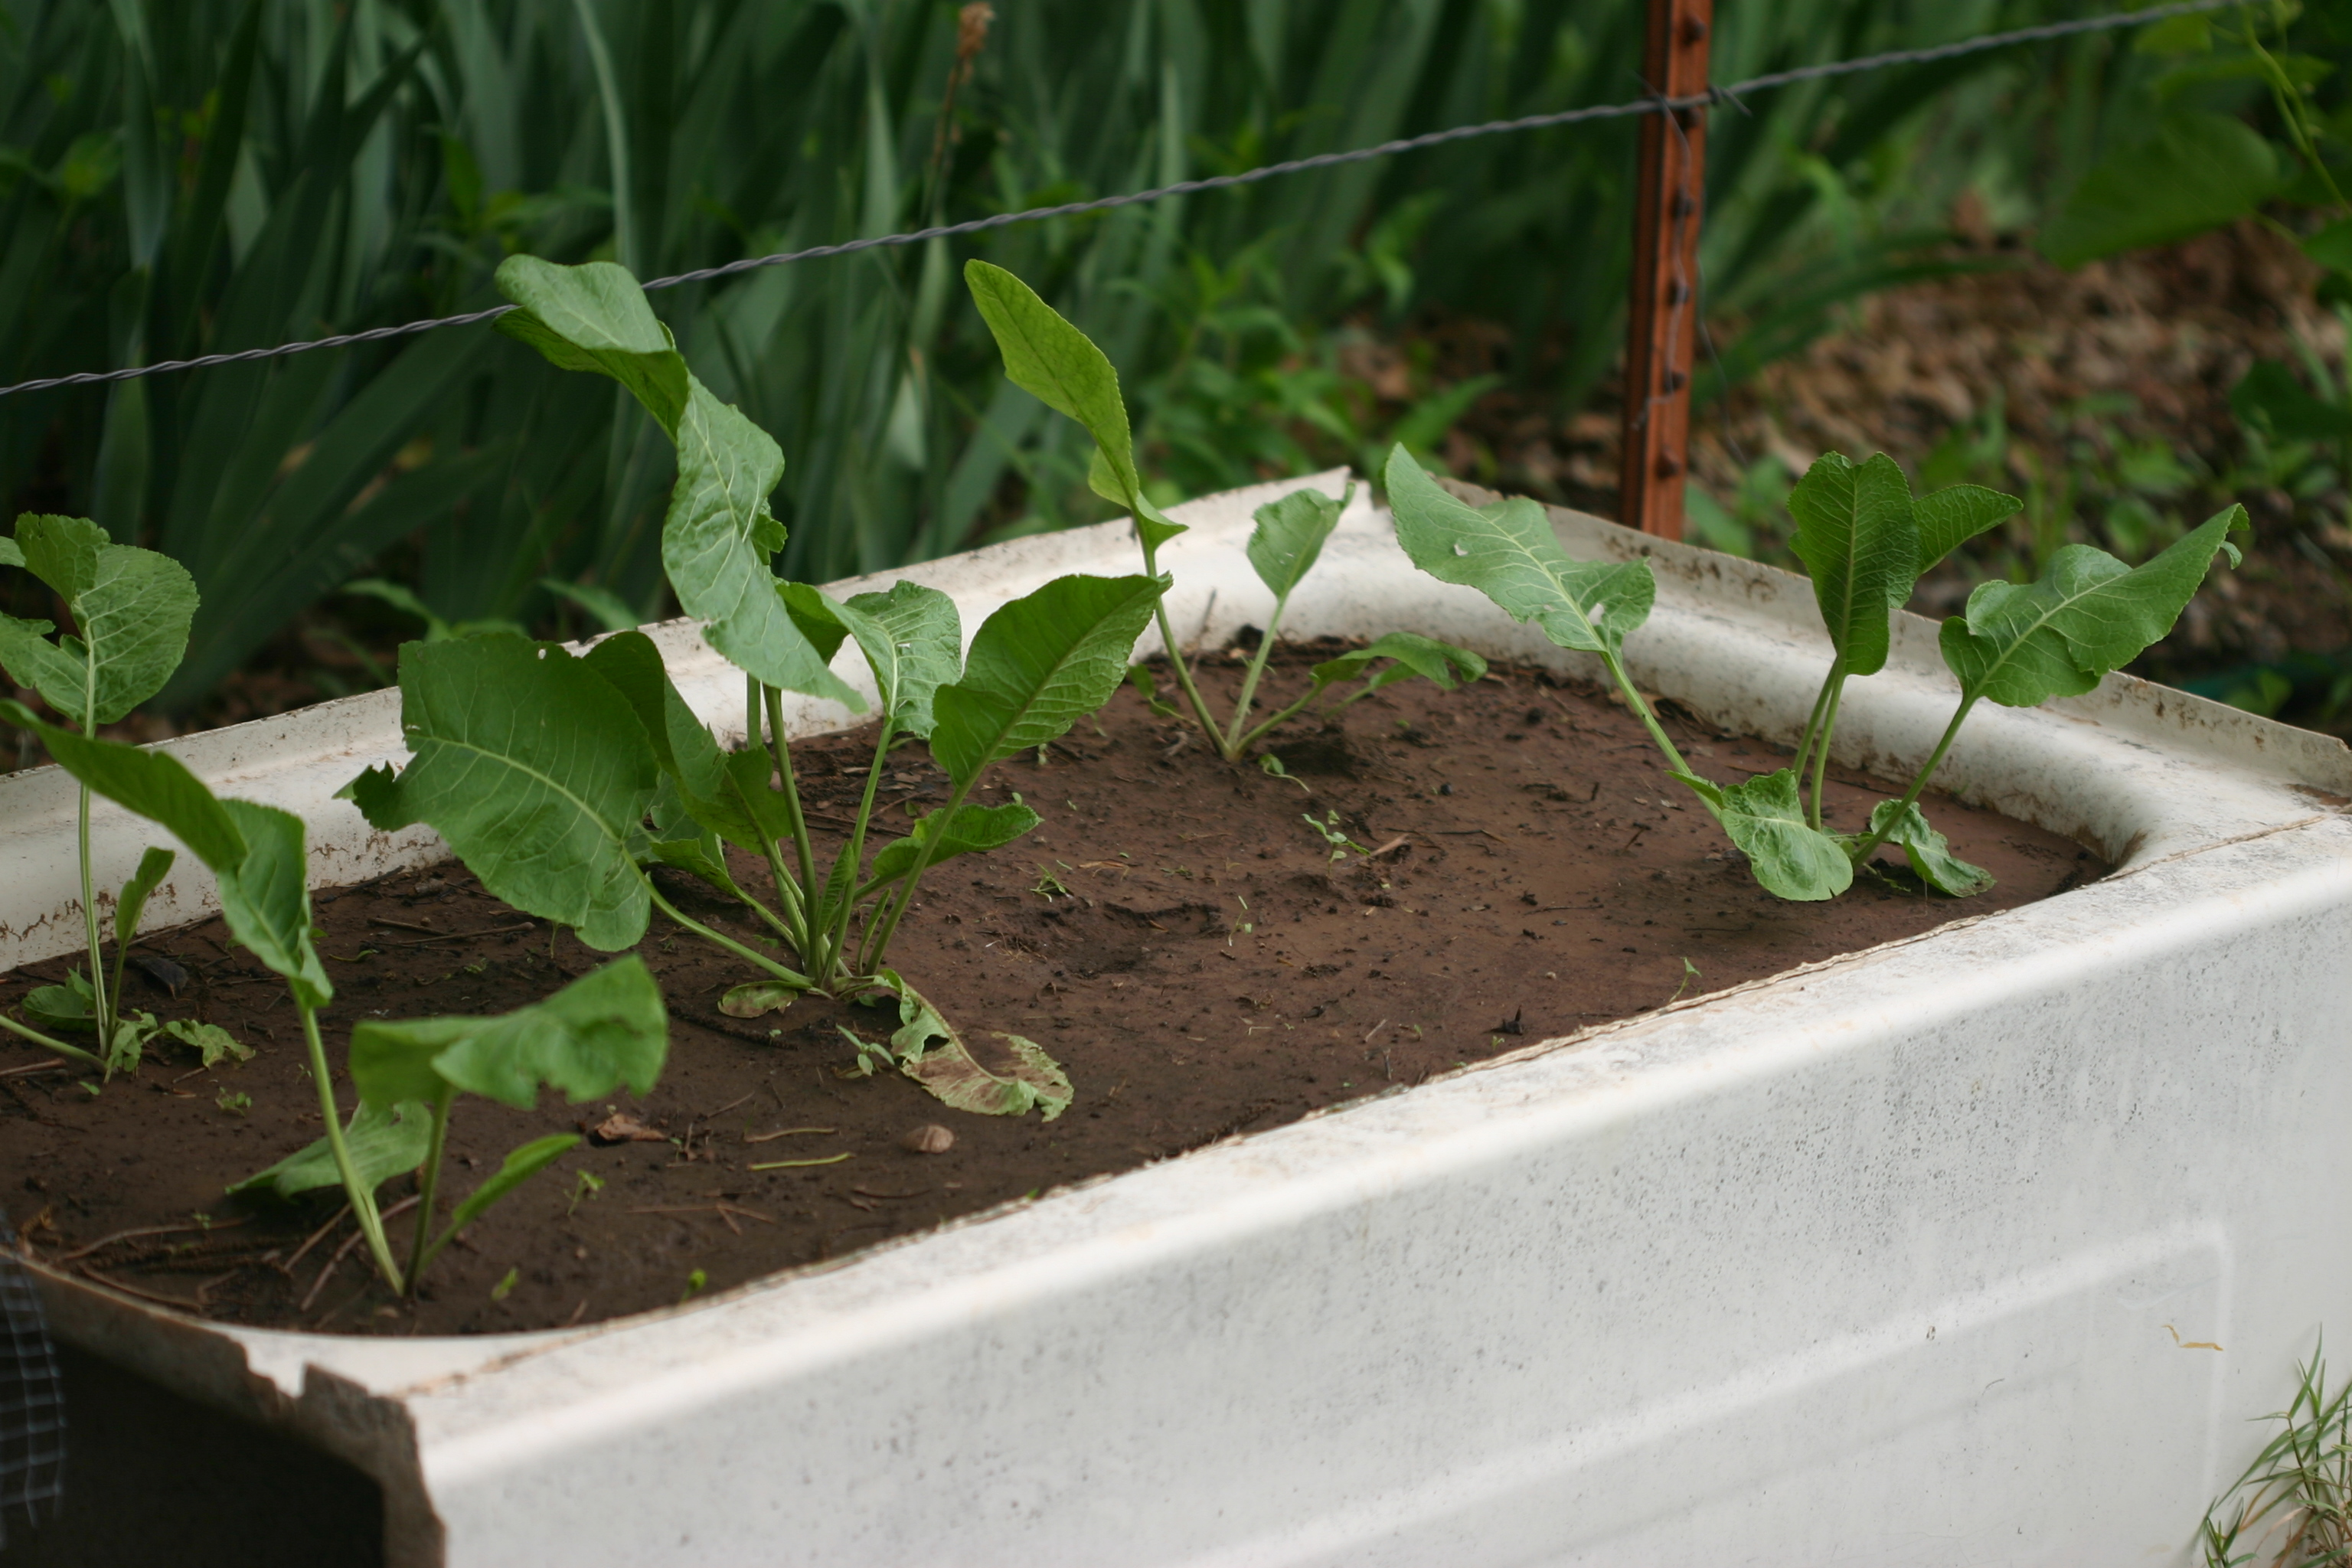 Bathtub gardening day by day the farm girl way for Fiberglass garden tub